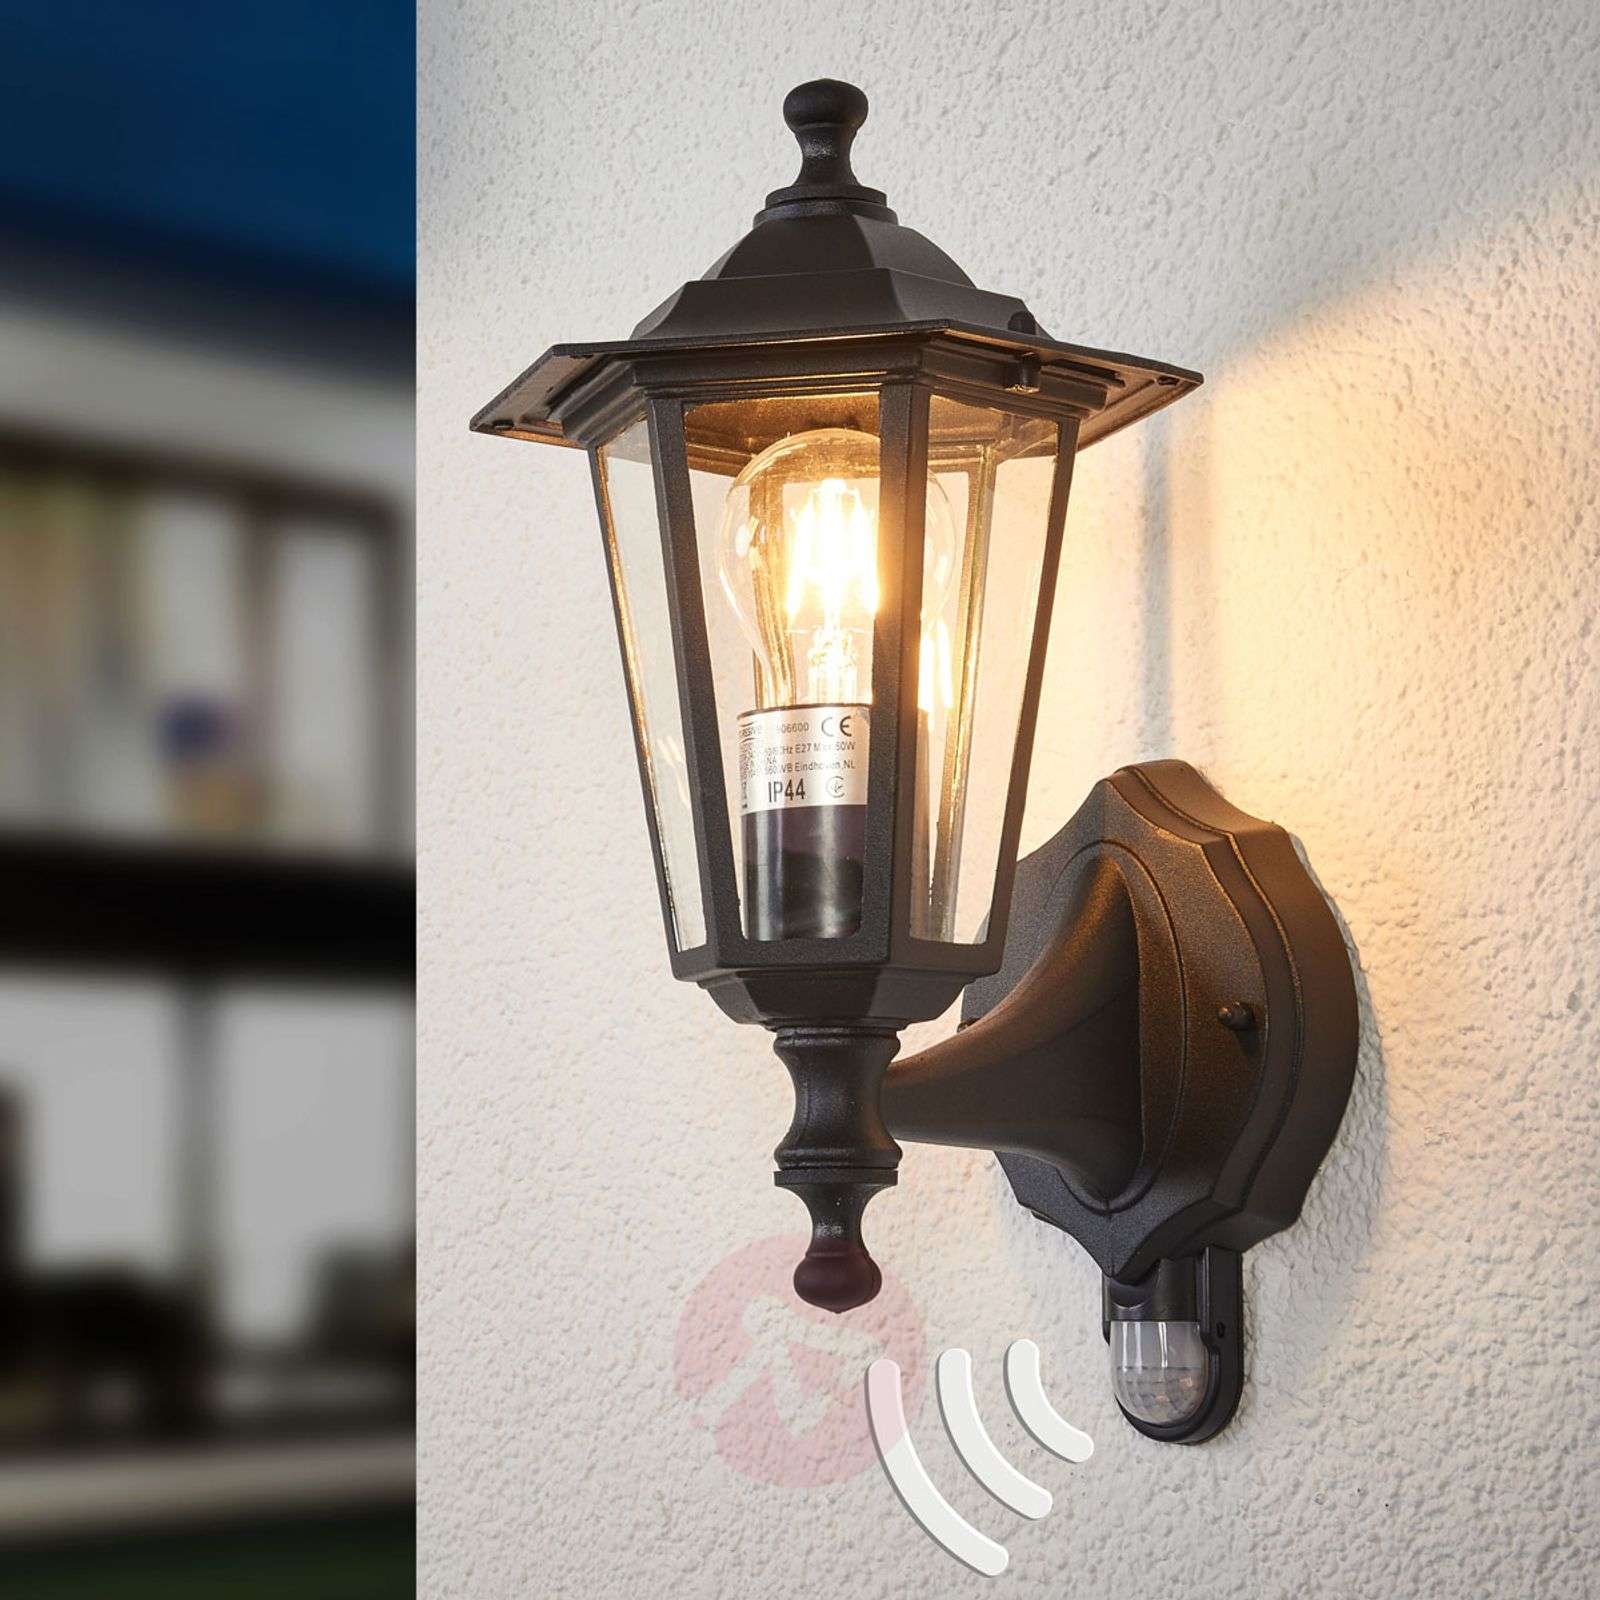 Outdoor Lighting Companies: Infrared Outdoor Light PEKING Black